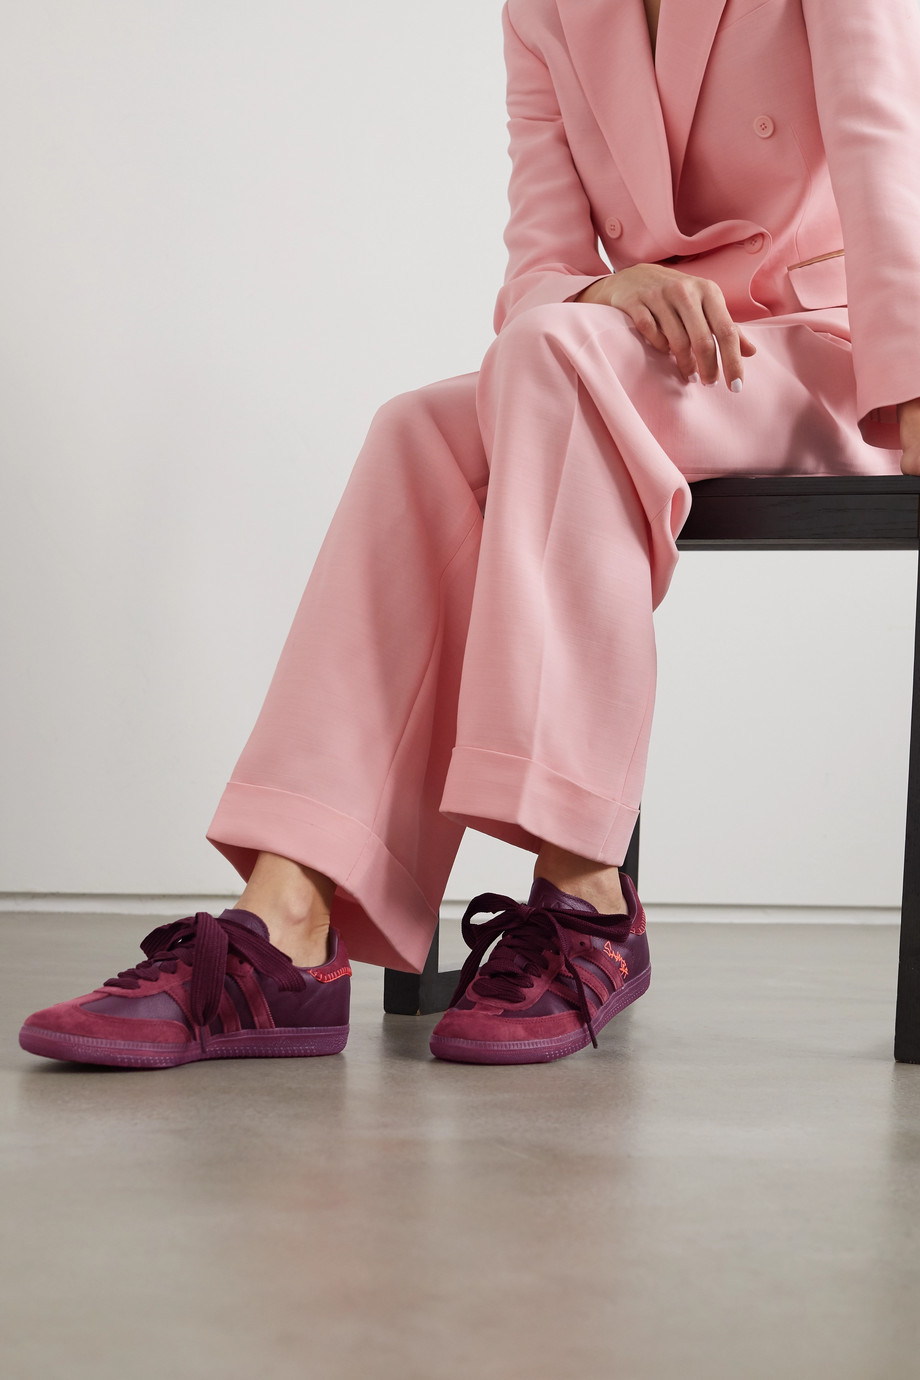 adidas Originals + Jonah Hill Samba leather and suede sneakers